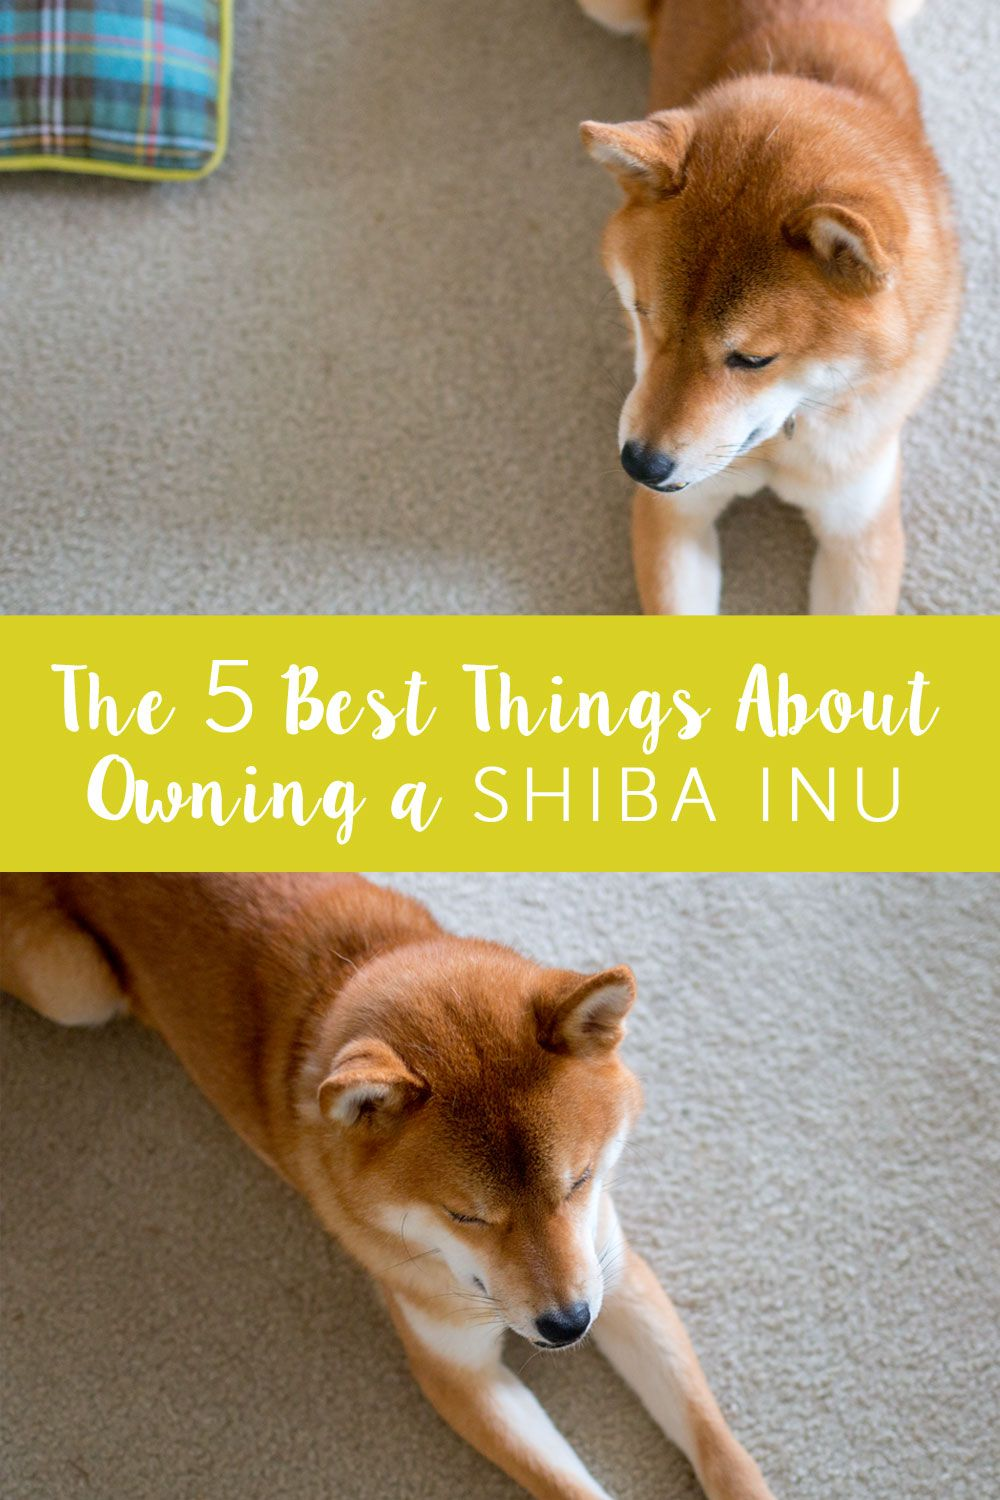 The 5 Best Things About Owning A Shiba Inu Giveaway Hellorigby Seattle Fashion Lifestyle Blog Shiba Inu Shiba Inu Dog Shiba Inu Training